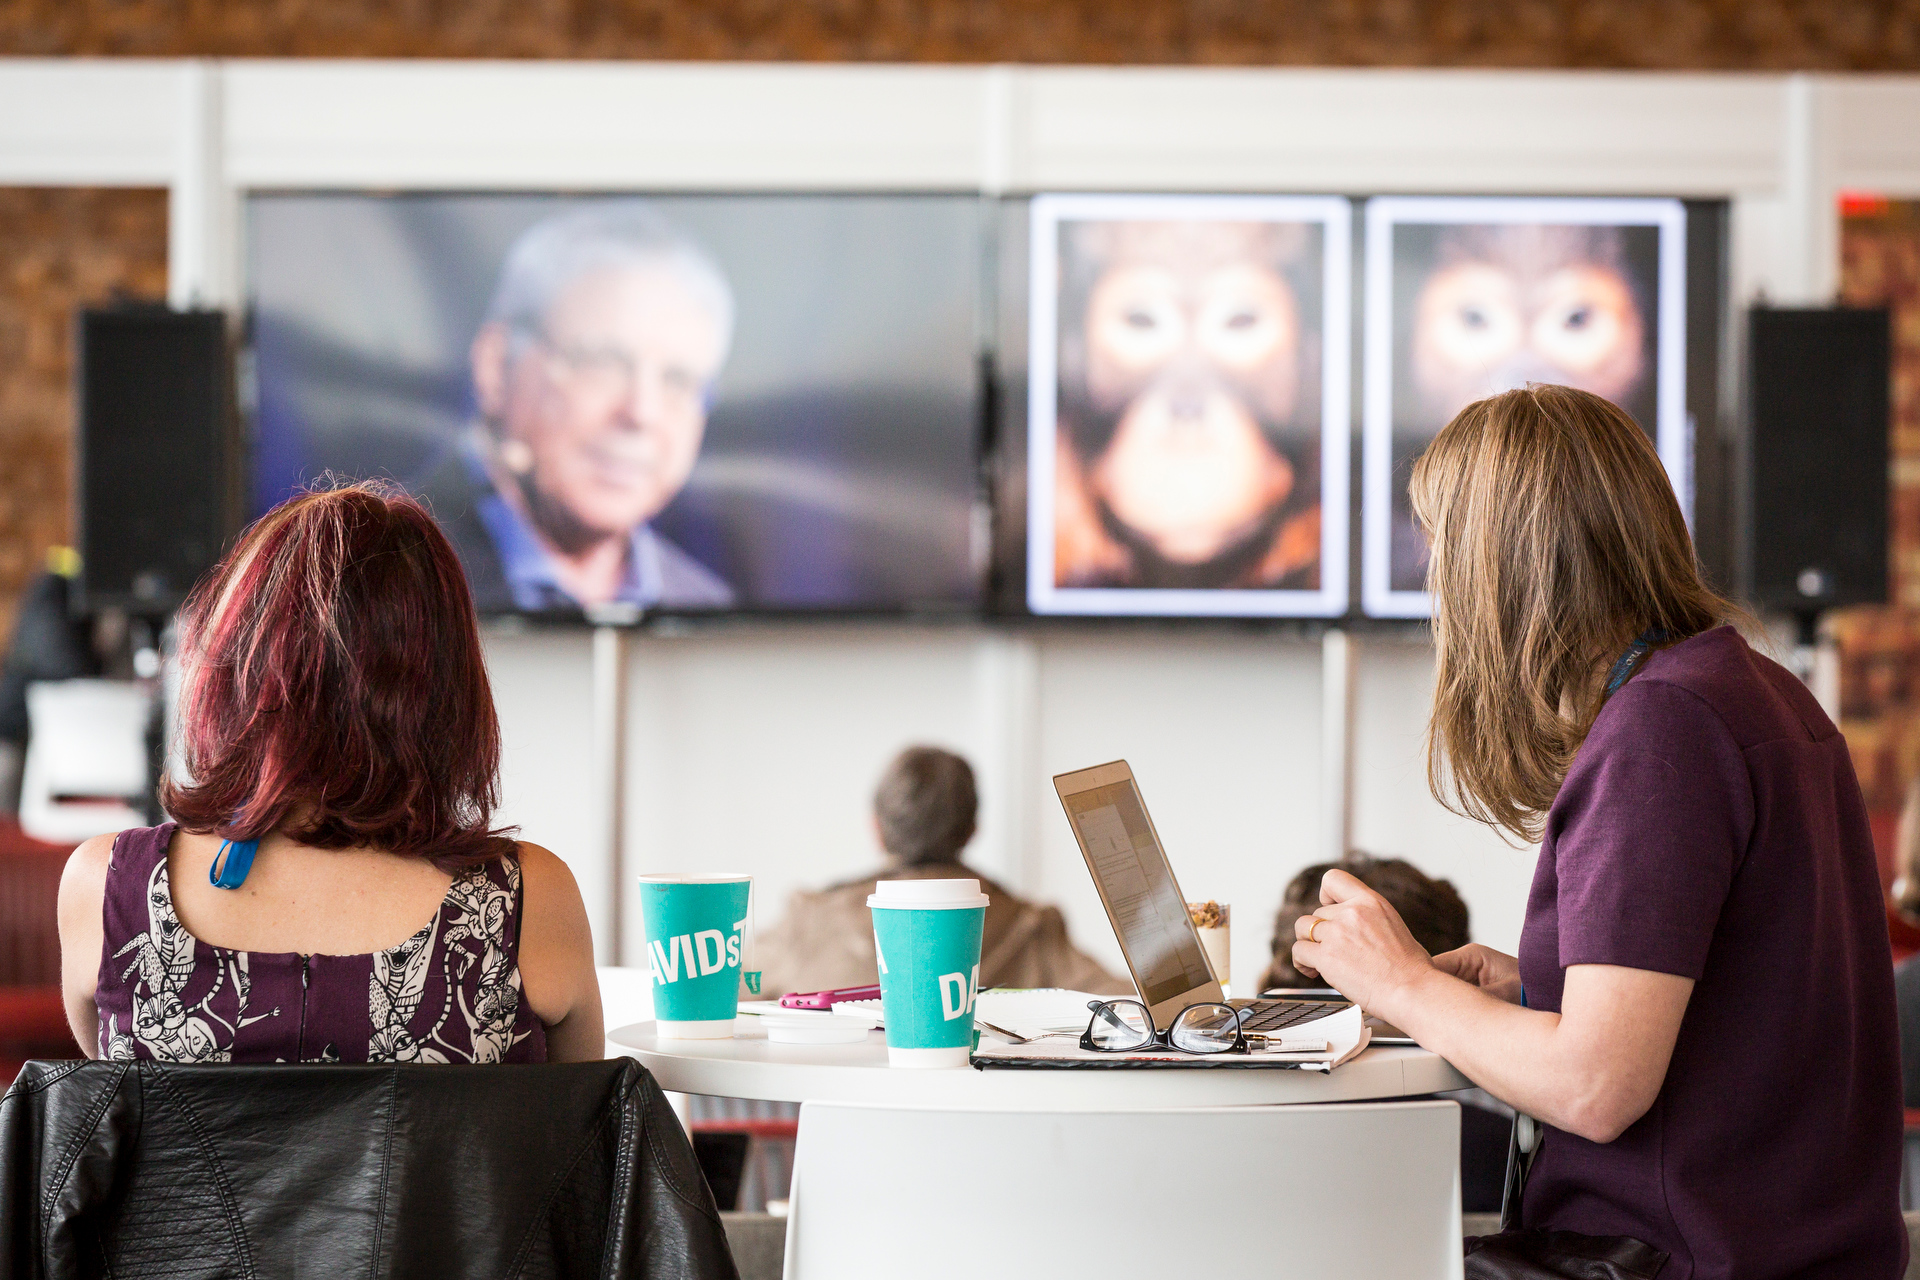 TED2015 attendees enjoy a talk in a simulcast lounge.